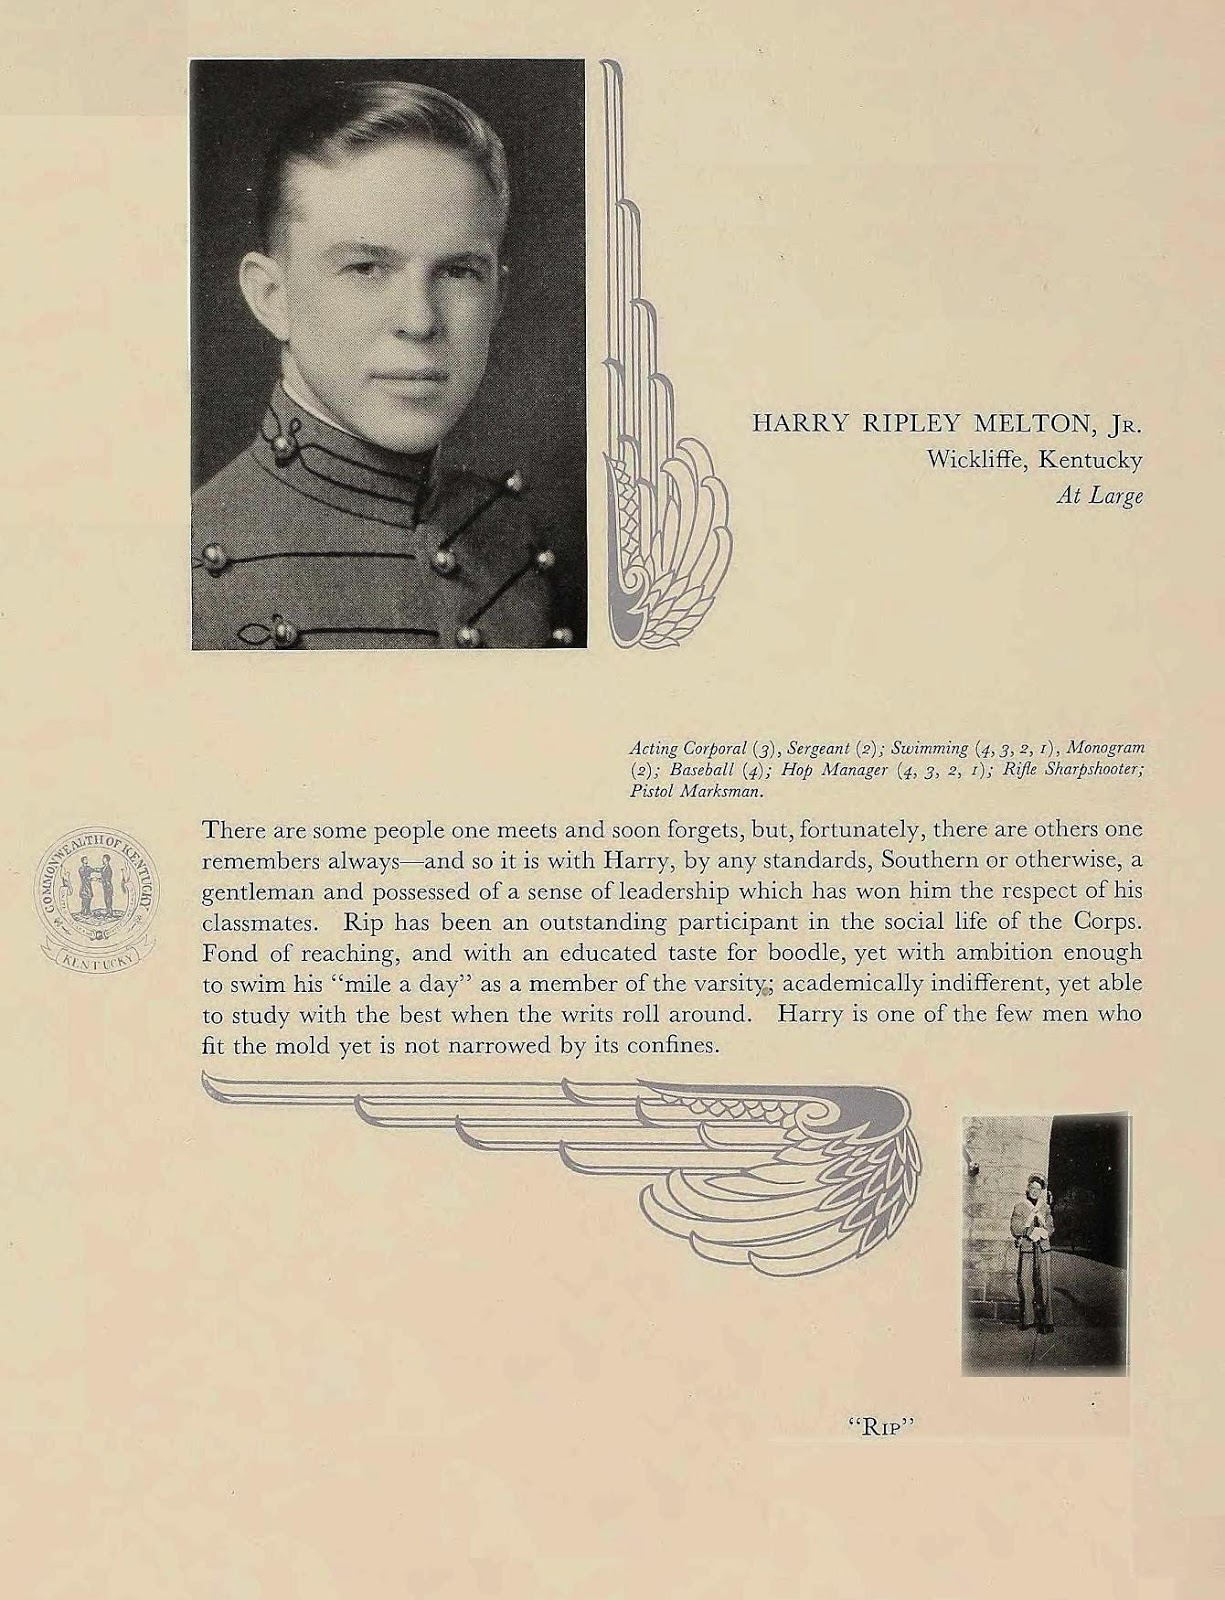 Harry Ripley Melton, Jr. from the 1936 West Point yearbook